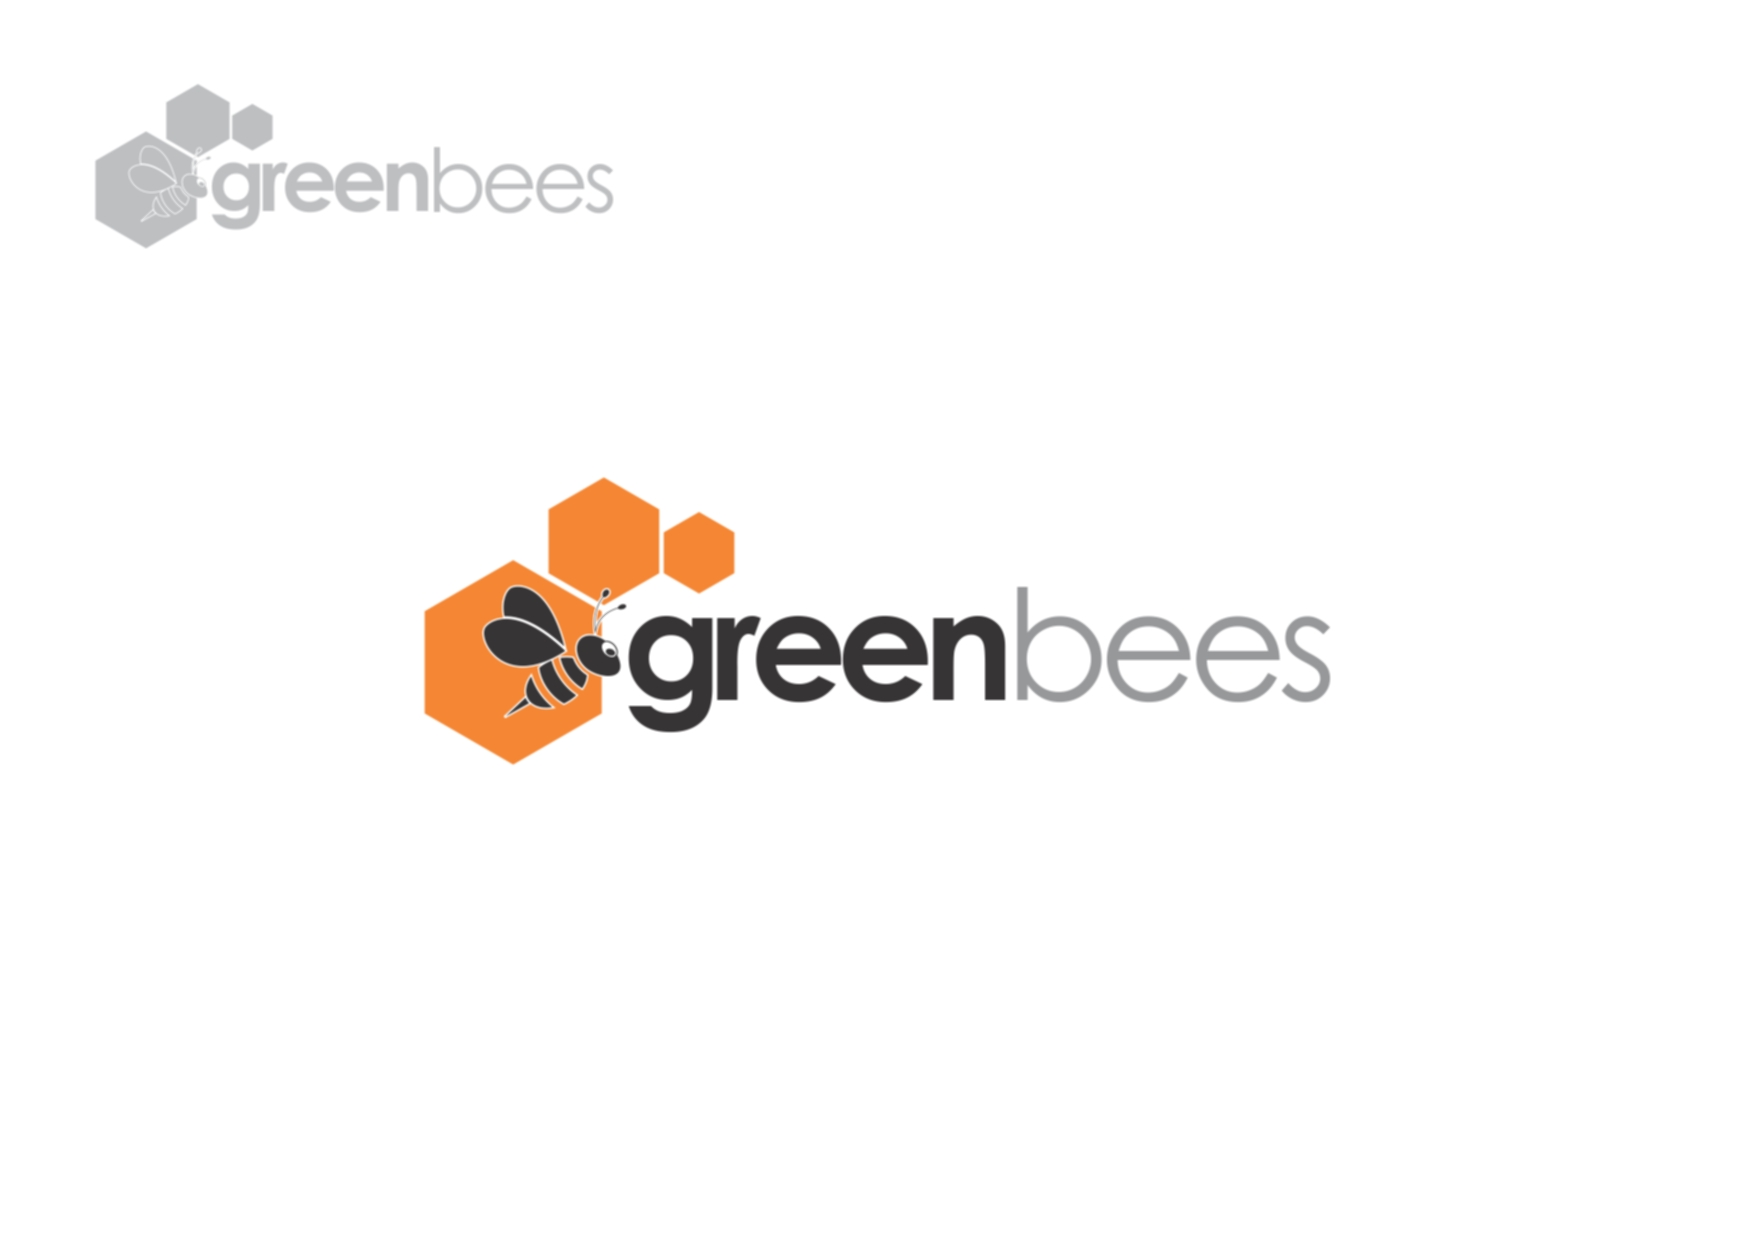 Logo Design by Private User - Entry No. 4 in the Logo Design Contest Greenbees Logo Design.